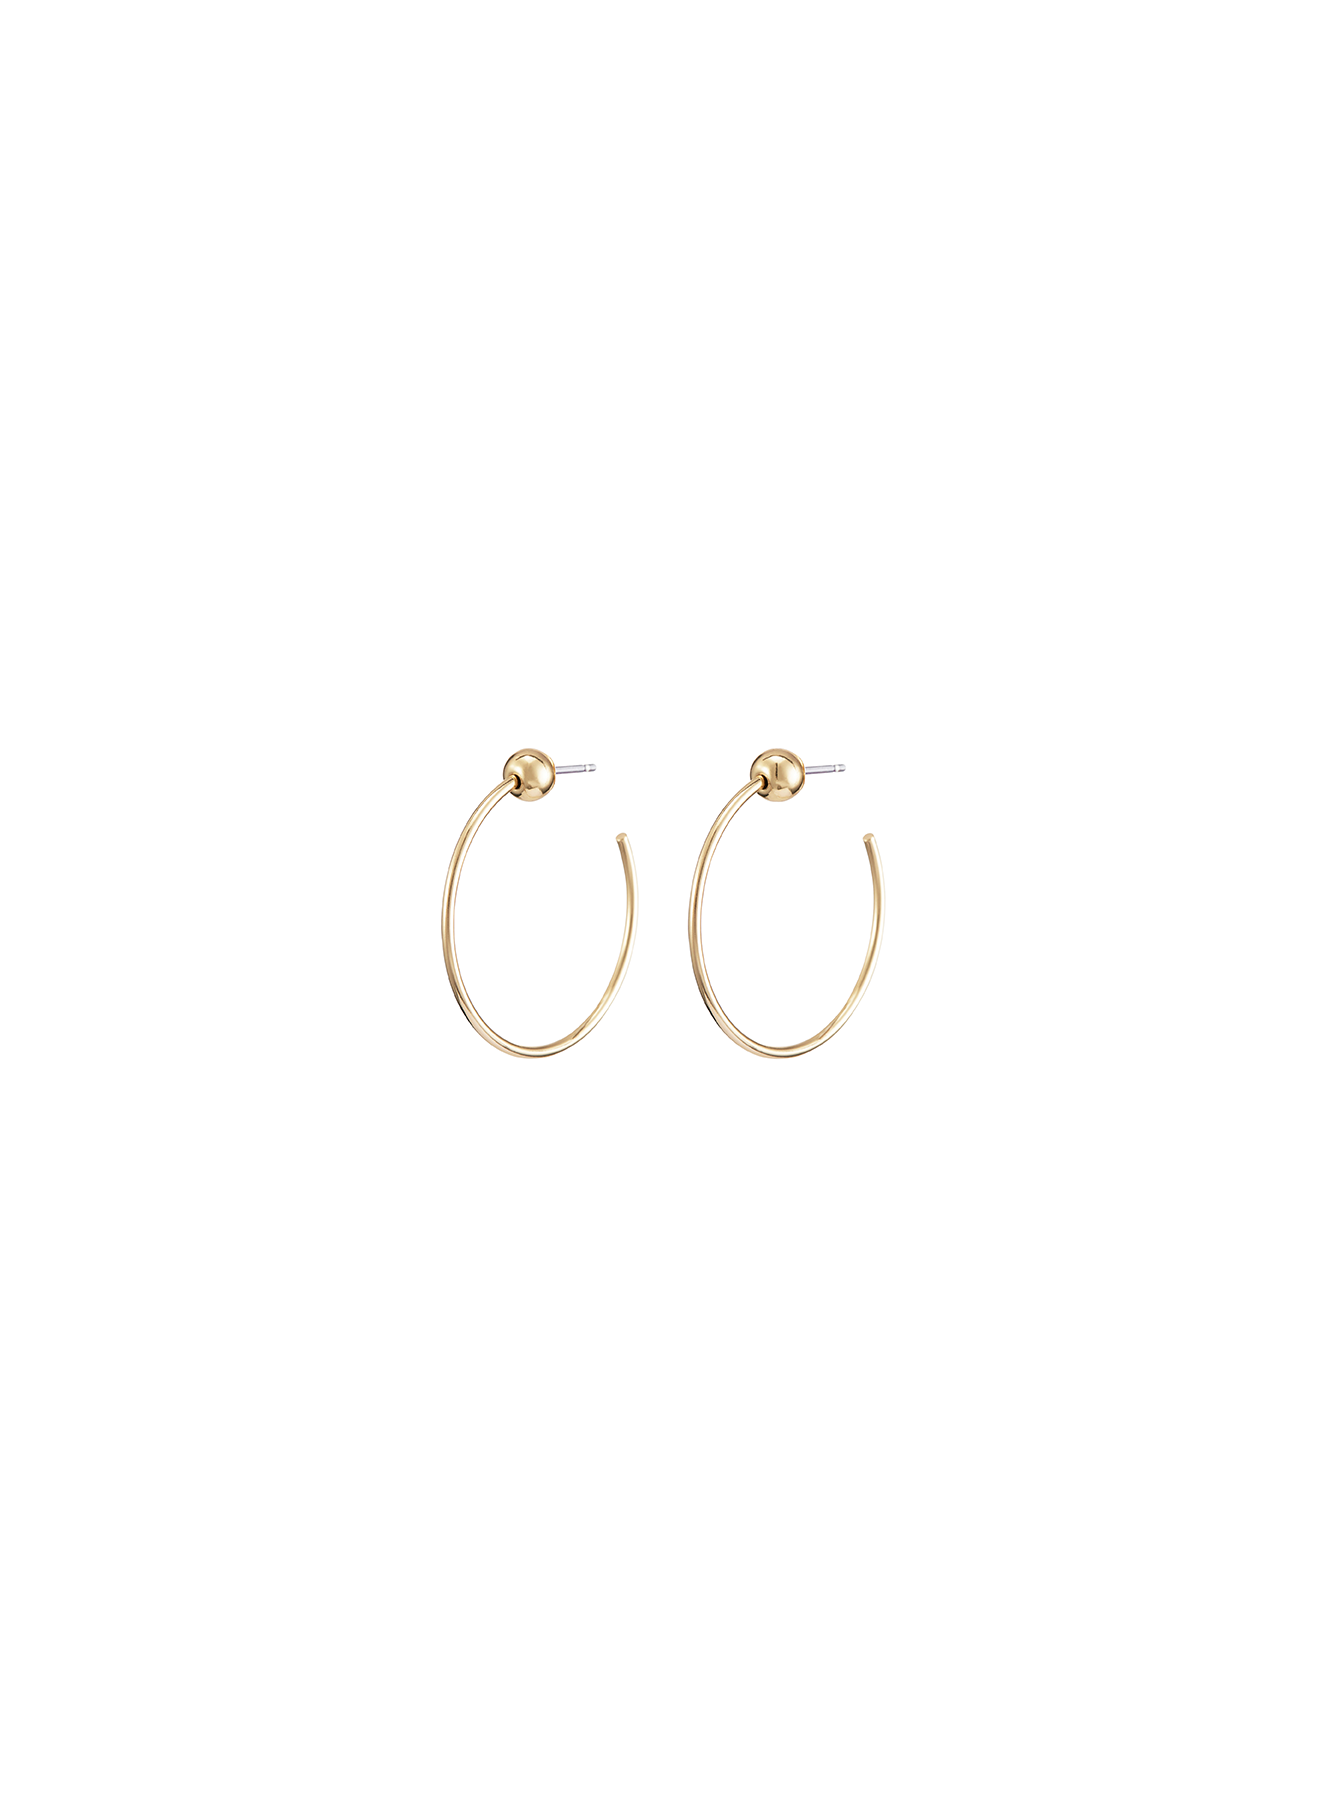 JENNY BIRD - ICON HOOPS XS IN GOLD